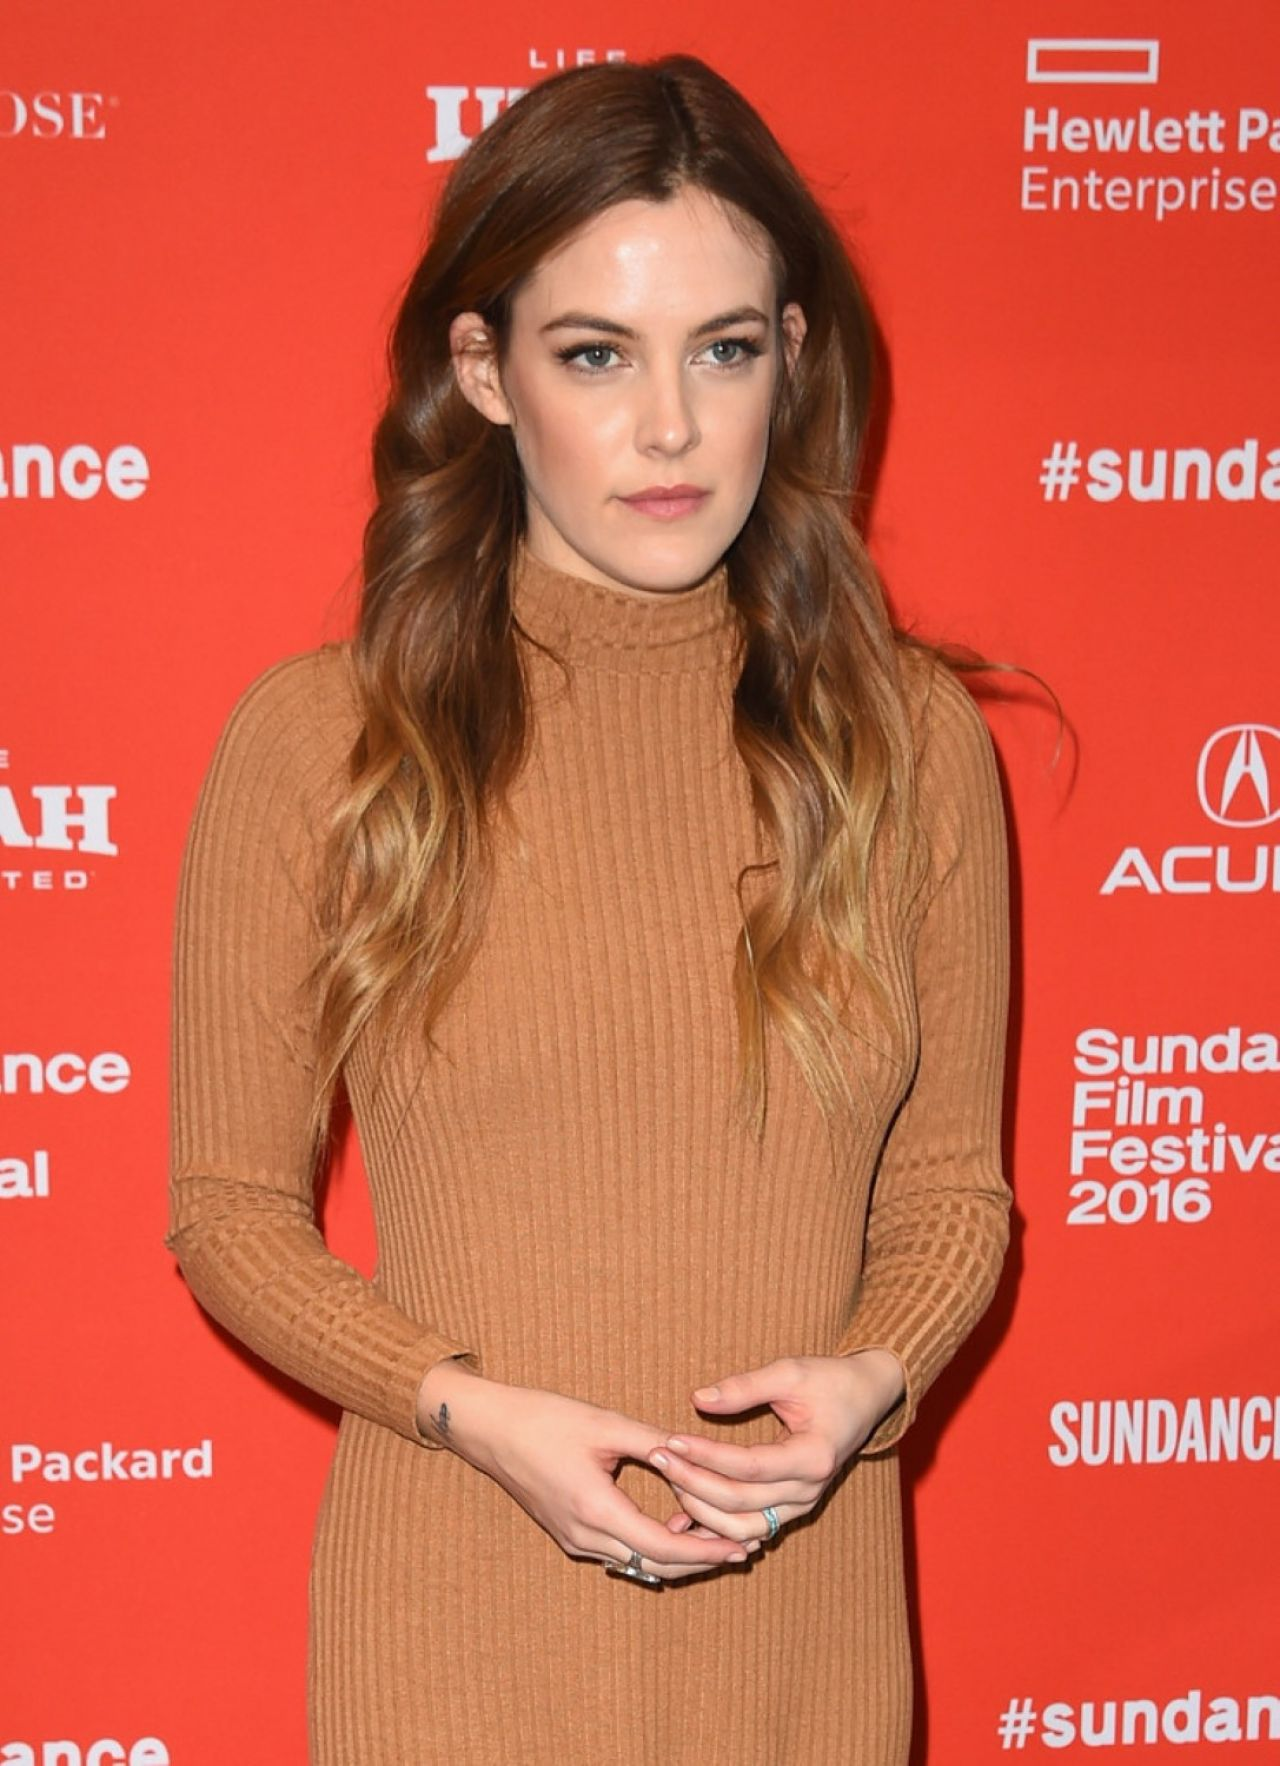 riley keough instariley keough the girlfriend experience trailer, riley keough victoria's secret, riley keough tko, riley keough vk, riley keough listal, riley keough site, riley keough golden globes, riley keough source, riley keough twitter, riley keough elvis presley, riley keough photoshoot, riley keough short hair, riley keough height weight, riley keough esquire, riley keough andrew garfield, riley keough husband, riley keough imdb, riley keough insta, riley keough photo gallery, riley keough zimbio